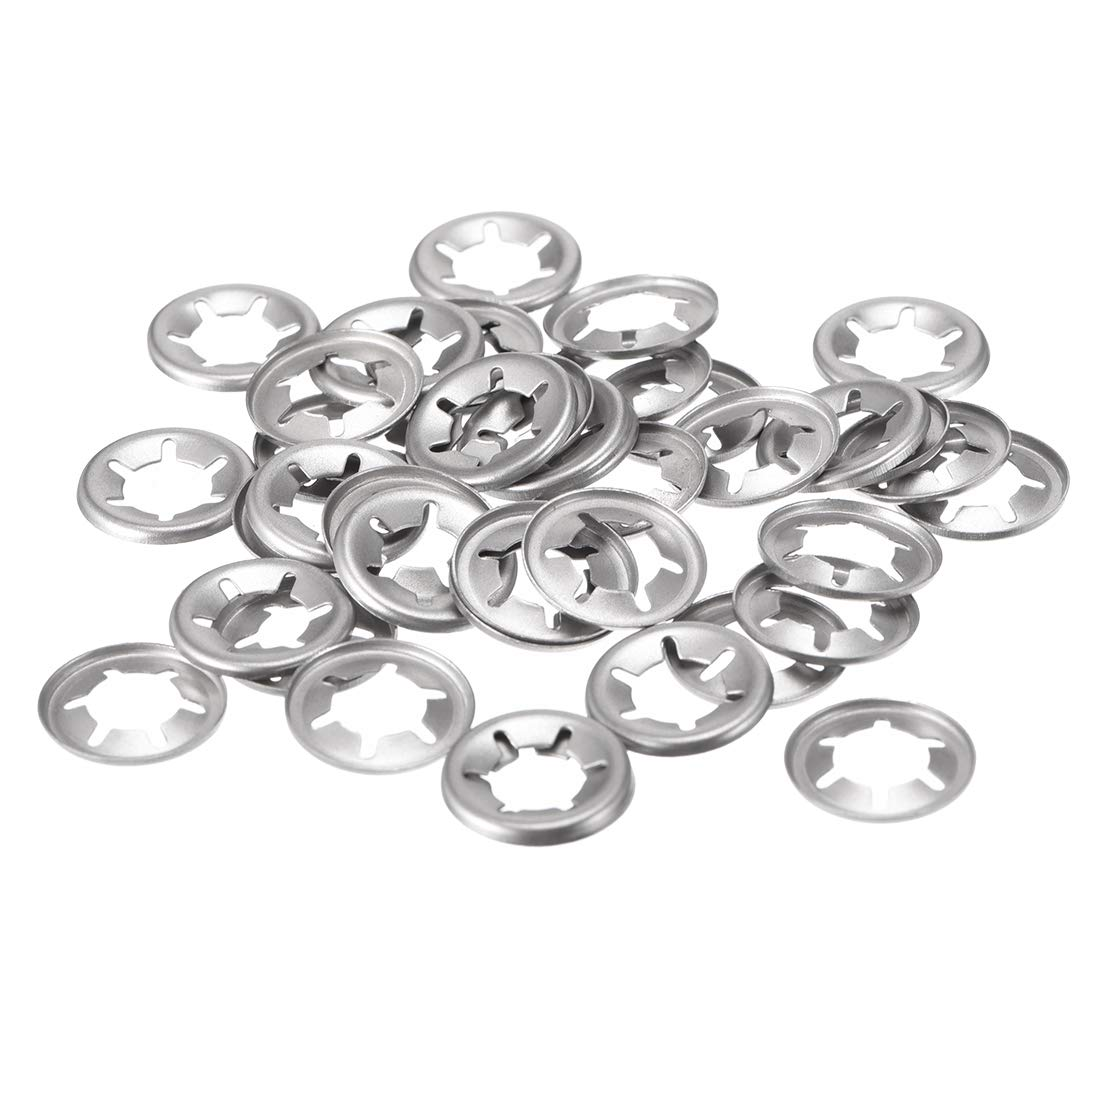 Internal Tooth Lock Washers Push-On Locking Speed Clip 304 Stainless Steel 40pcs 15mm O.D uxcell M8 Starlock Washer 7.4mm I.D